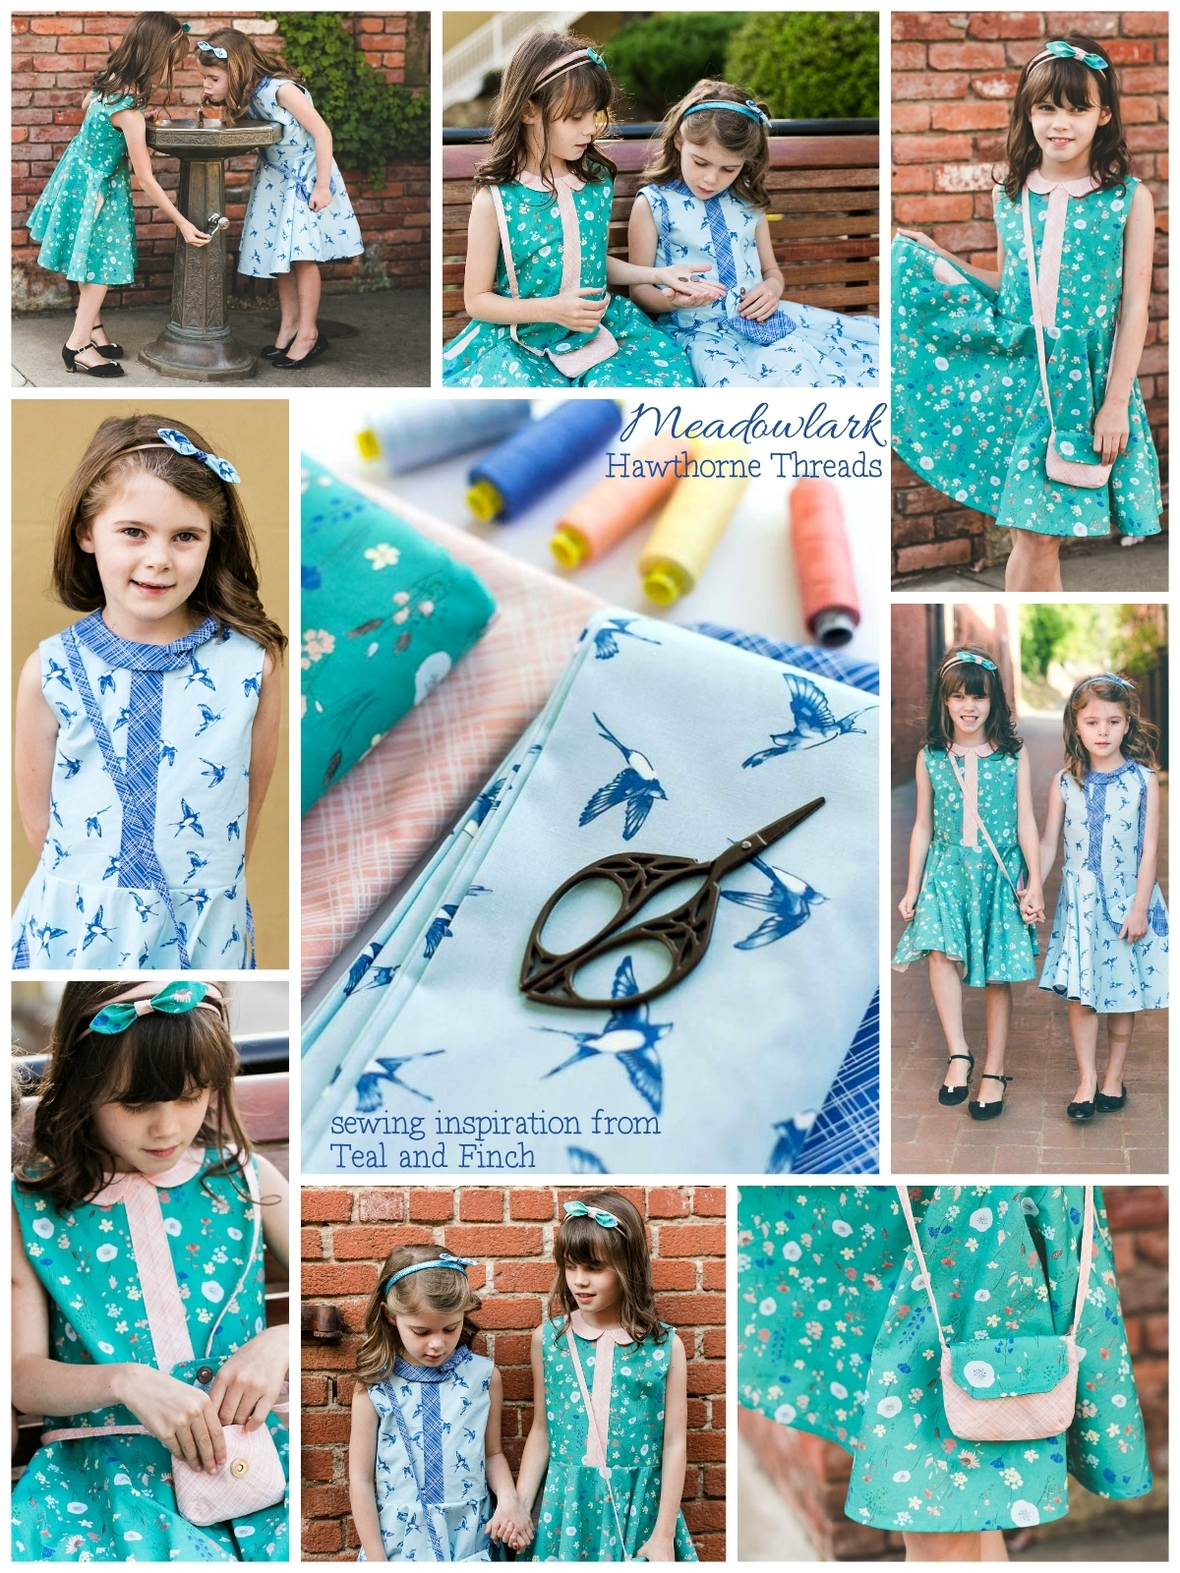 Meadowlark Fabric Sewing Inspiration Teal and Finch 1200